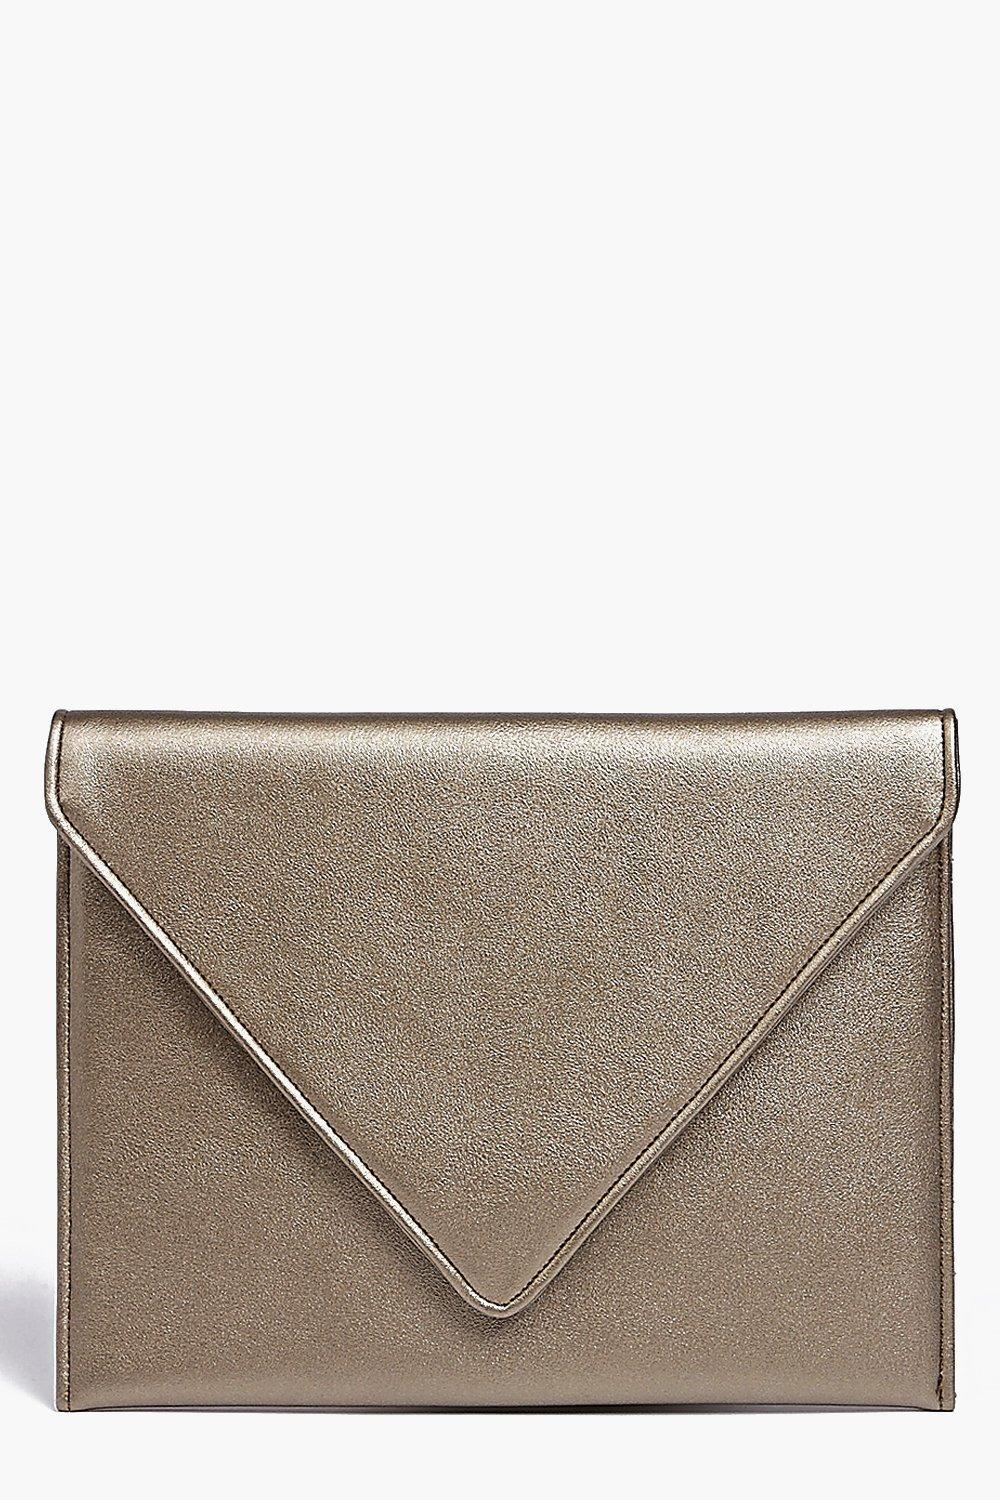 Fold Over Clutch Bag Gold - predominant colour: gold; occasions: evening; type of pattern: standard; style: clutch; length: hand carry; size: small; material: faux leather; pattern: plain; finish: metallic; season: a/w 2016